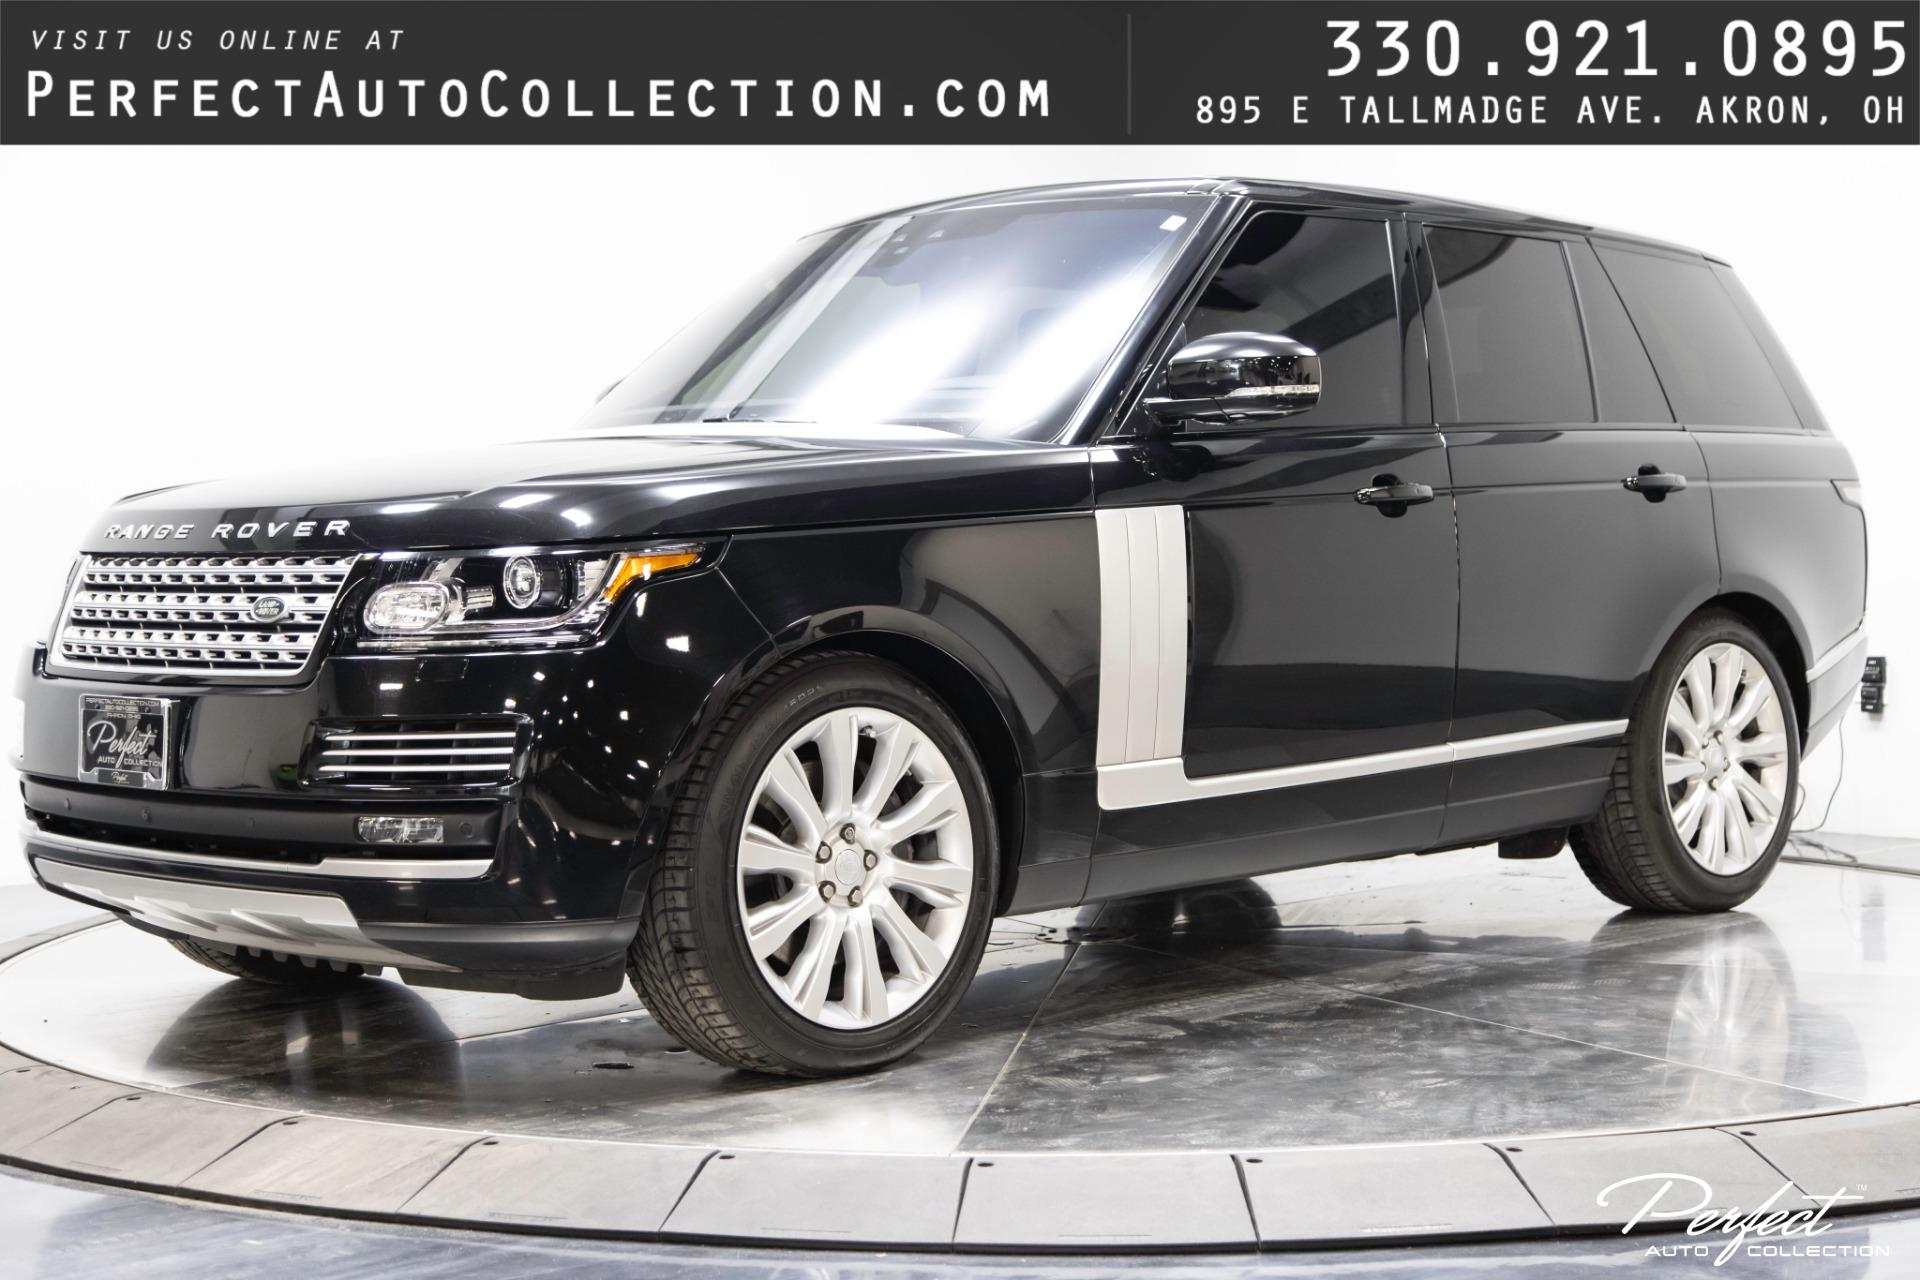 Used 2017 Land Rover Range Rover HSE for sale $64,995 at Perfect Auto Collection in Akron OH 44310 1